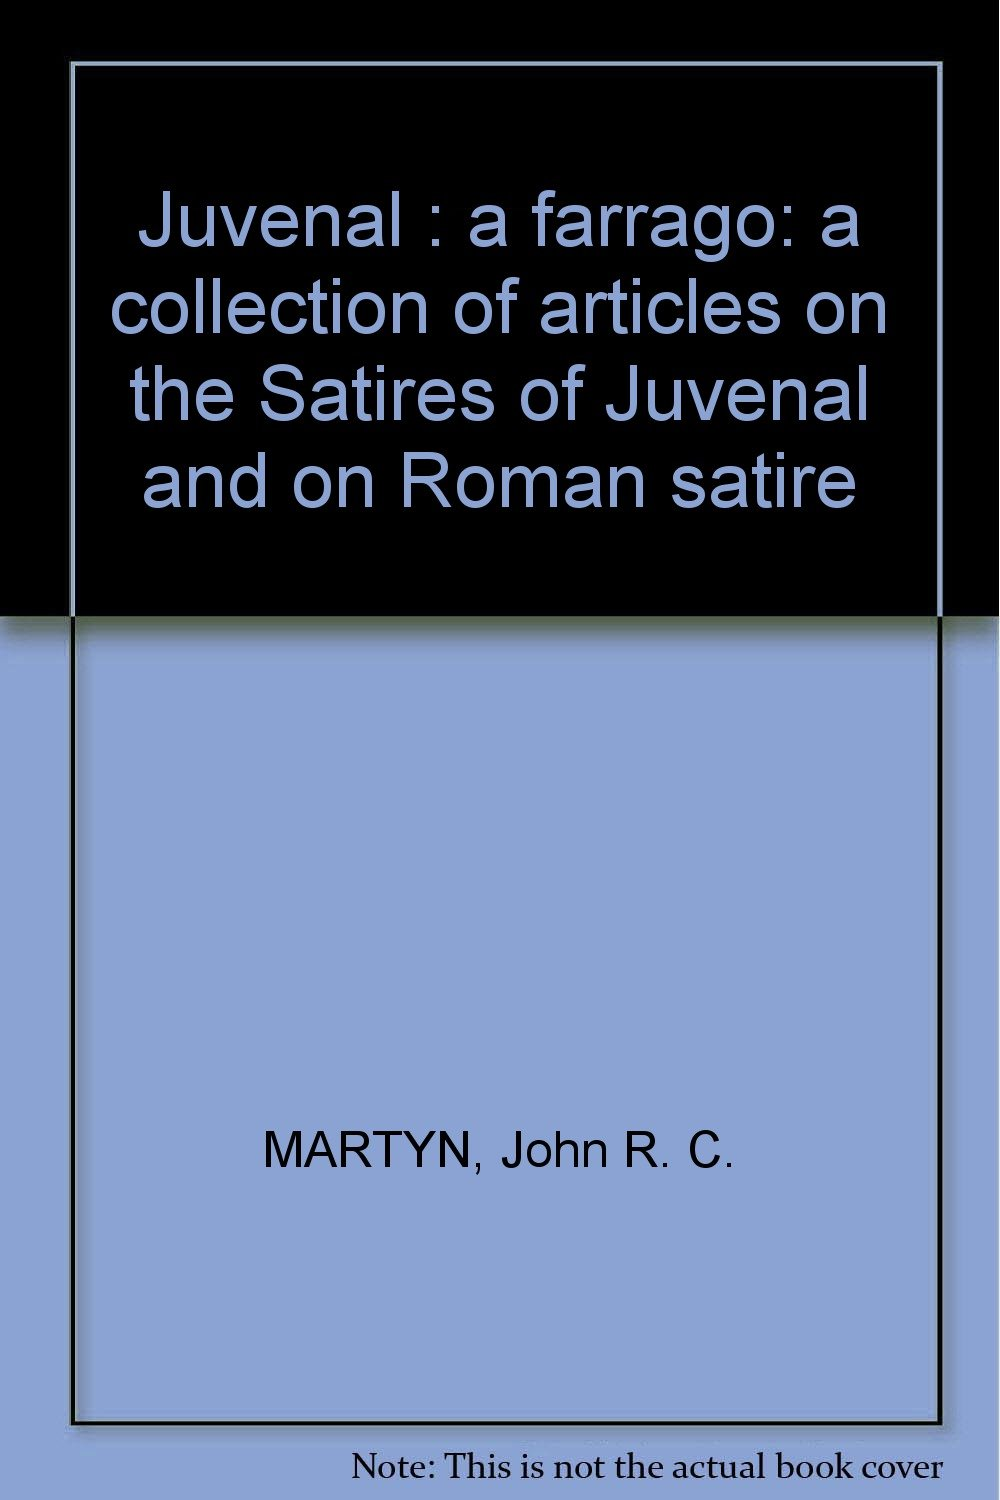 Juvenal A Farrago A Collection Of Articles On The Satires Of